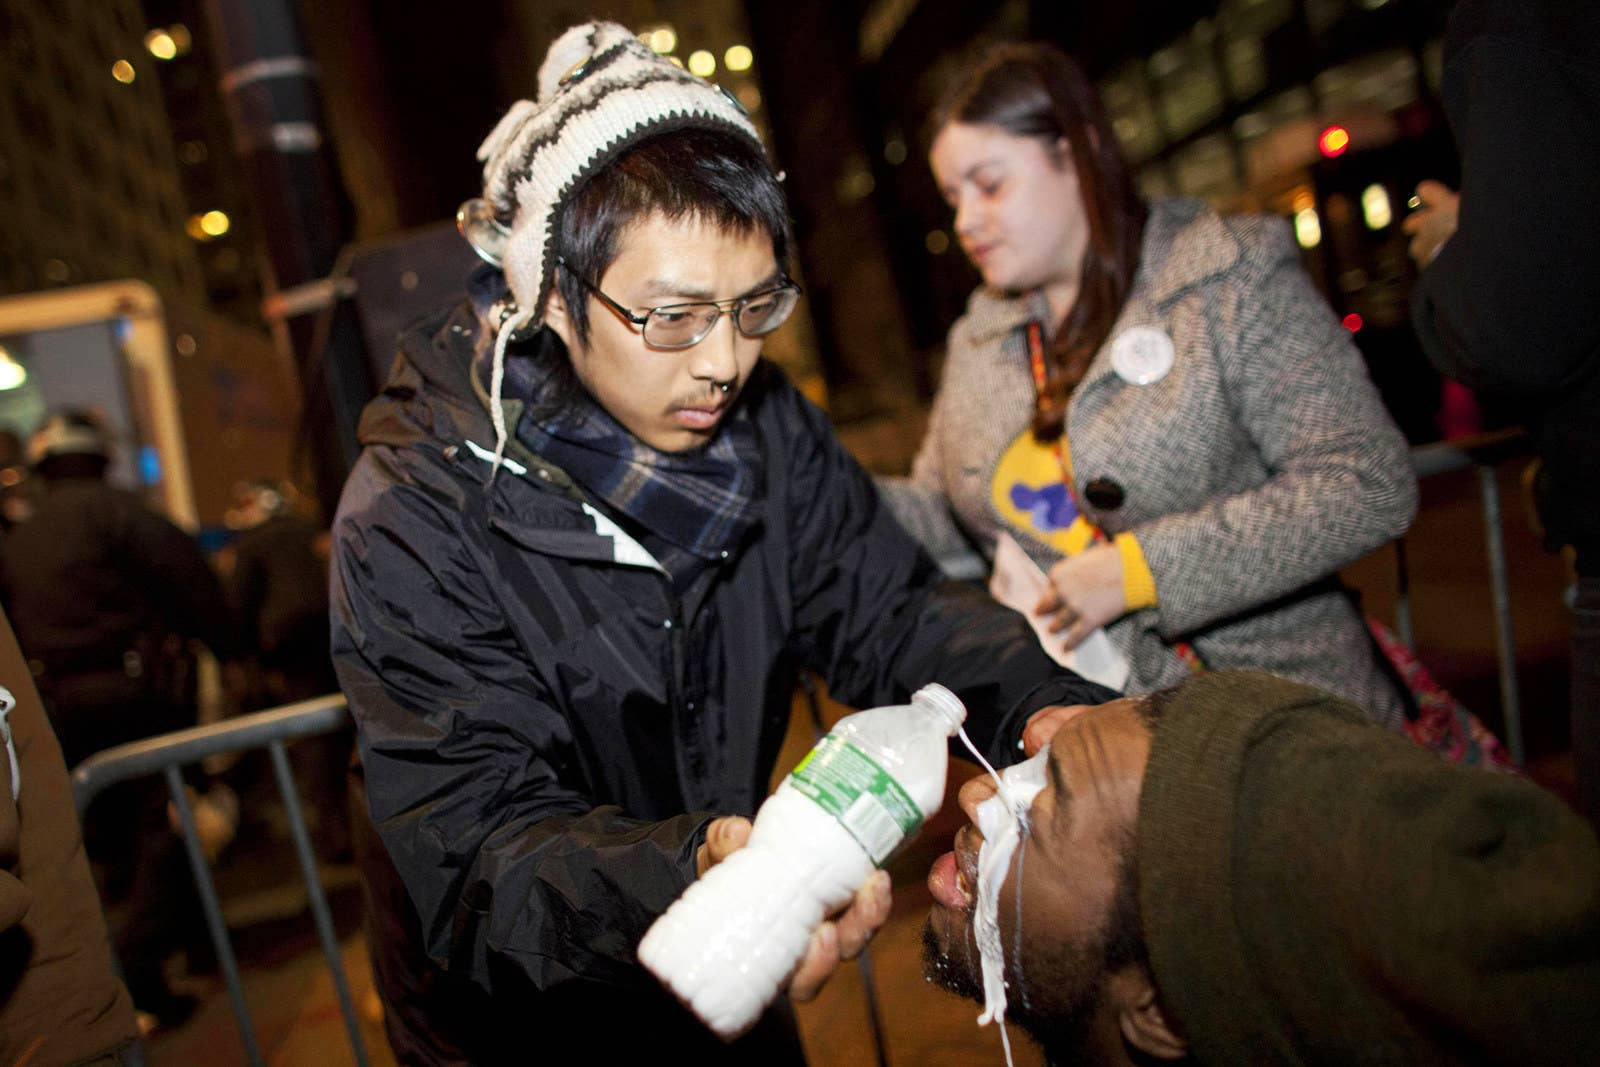 A protester pours liquid over the eyes of another protester to ease the pain from pepper spray during an unannounced raid by the New York City Police Department on Zuccotti Park during the early hours of Nov. 15, 2011.